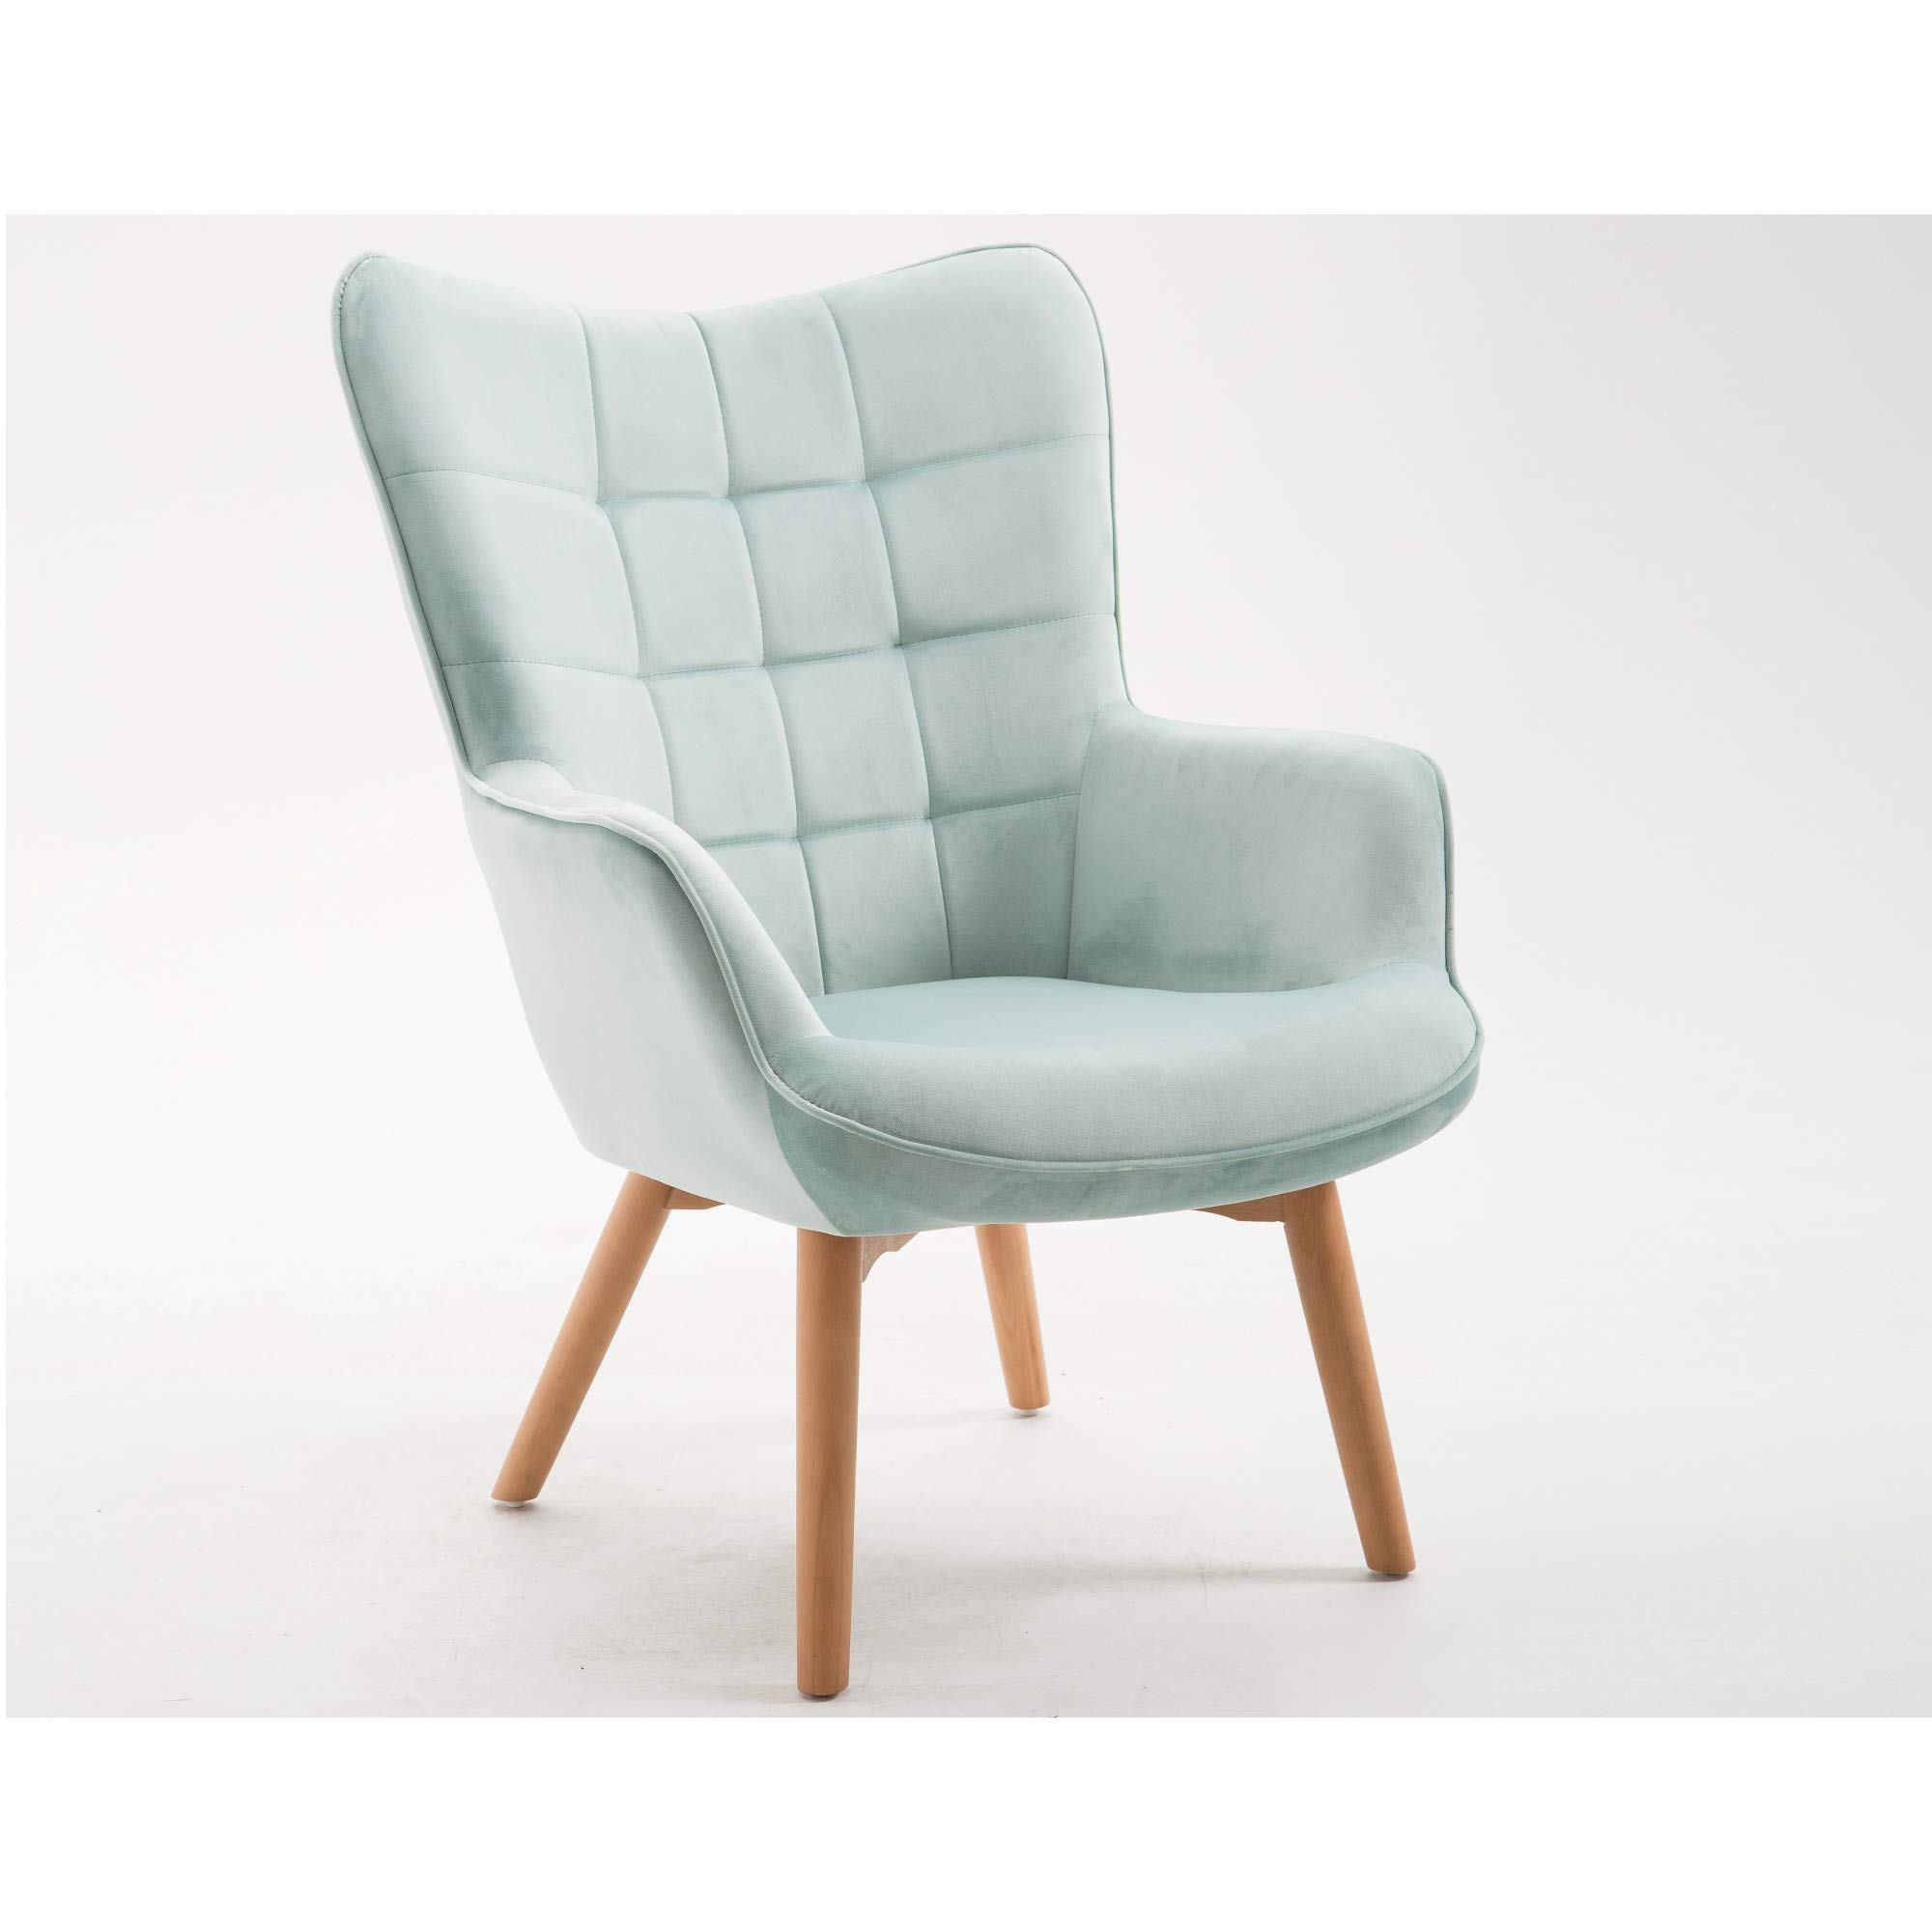 Yara Accent Chair in Robin's Egg Blue with Tufted, Velvet Like Upholstery And Wood Legs, by Artum Hill